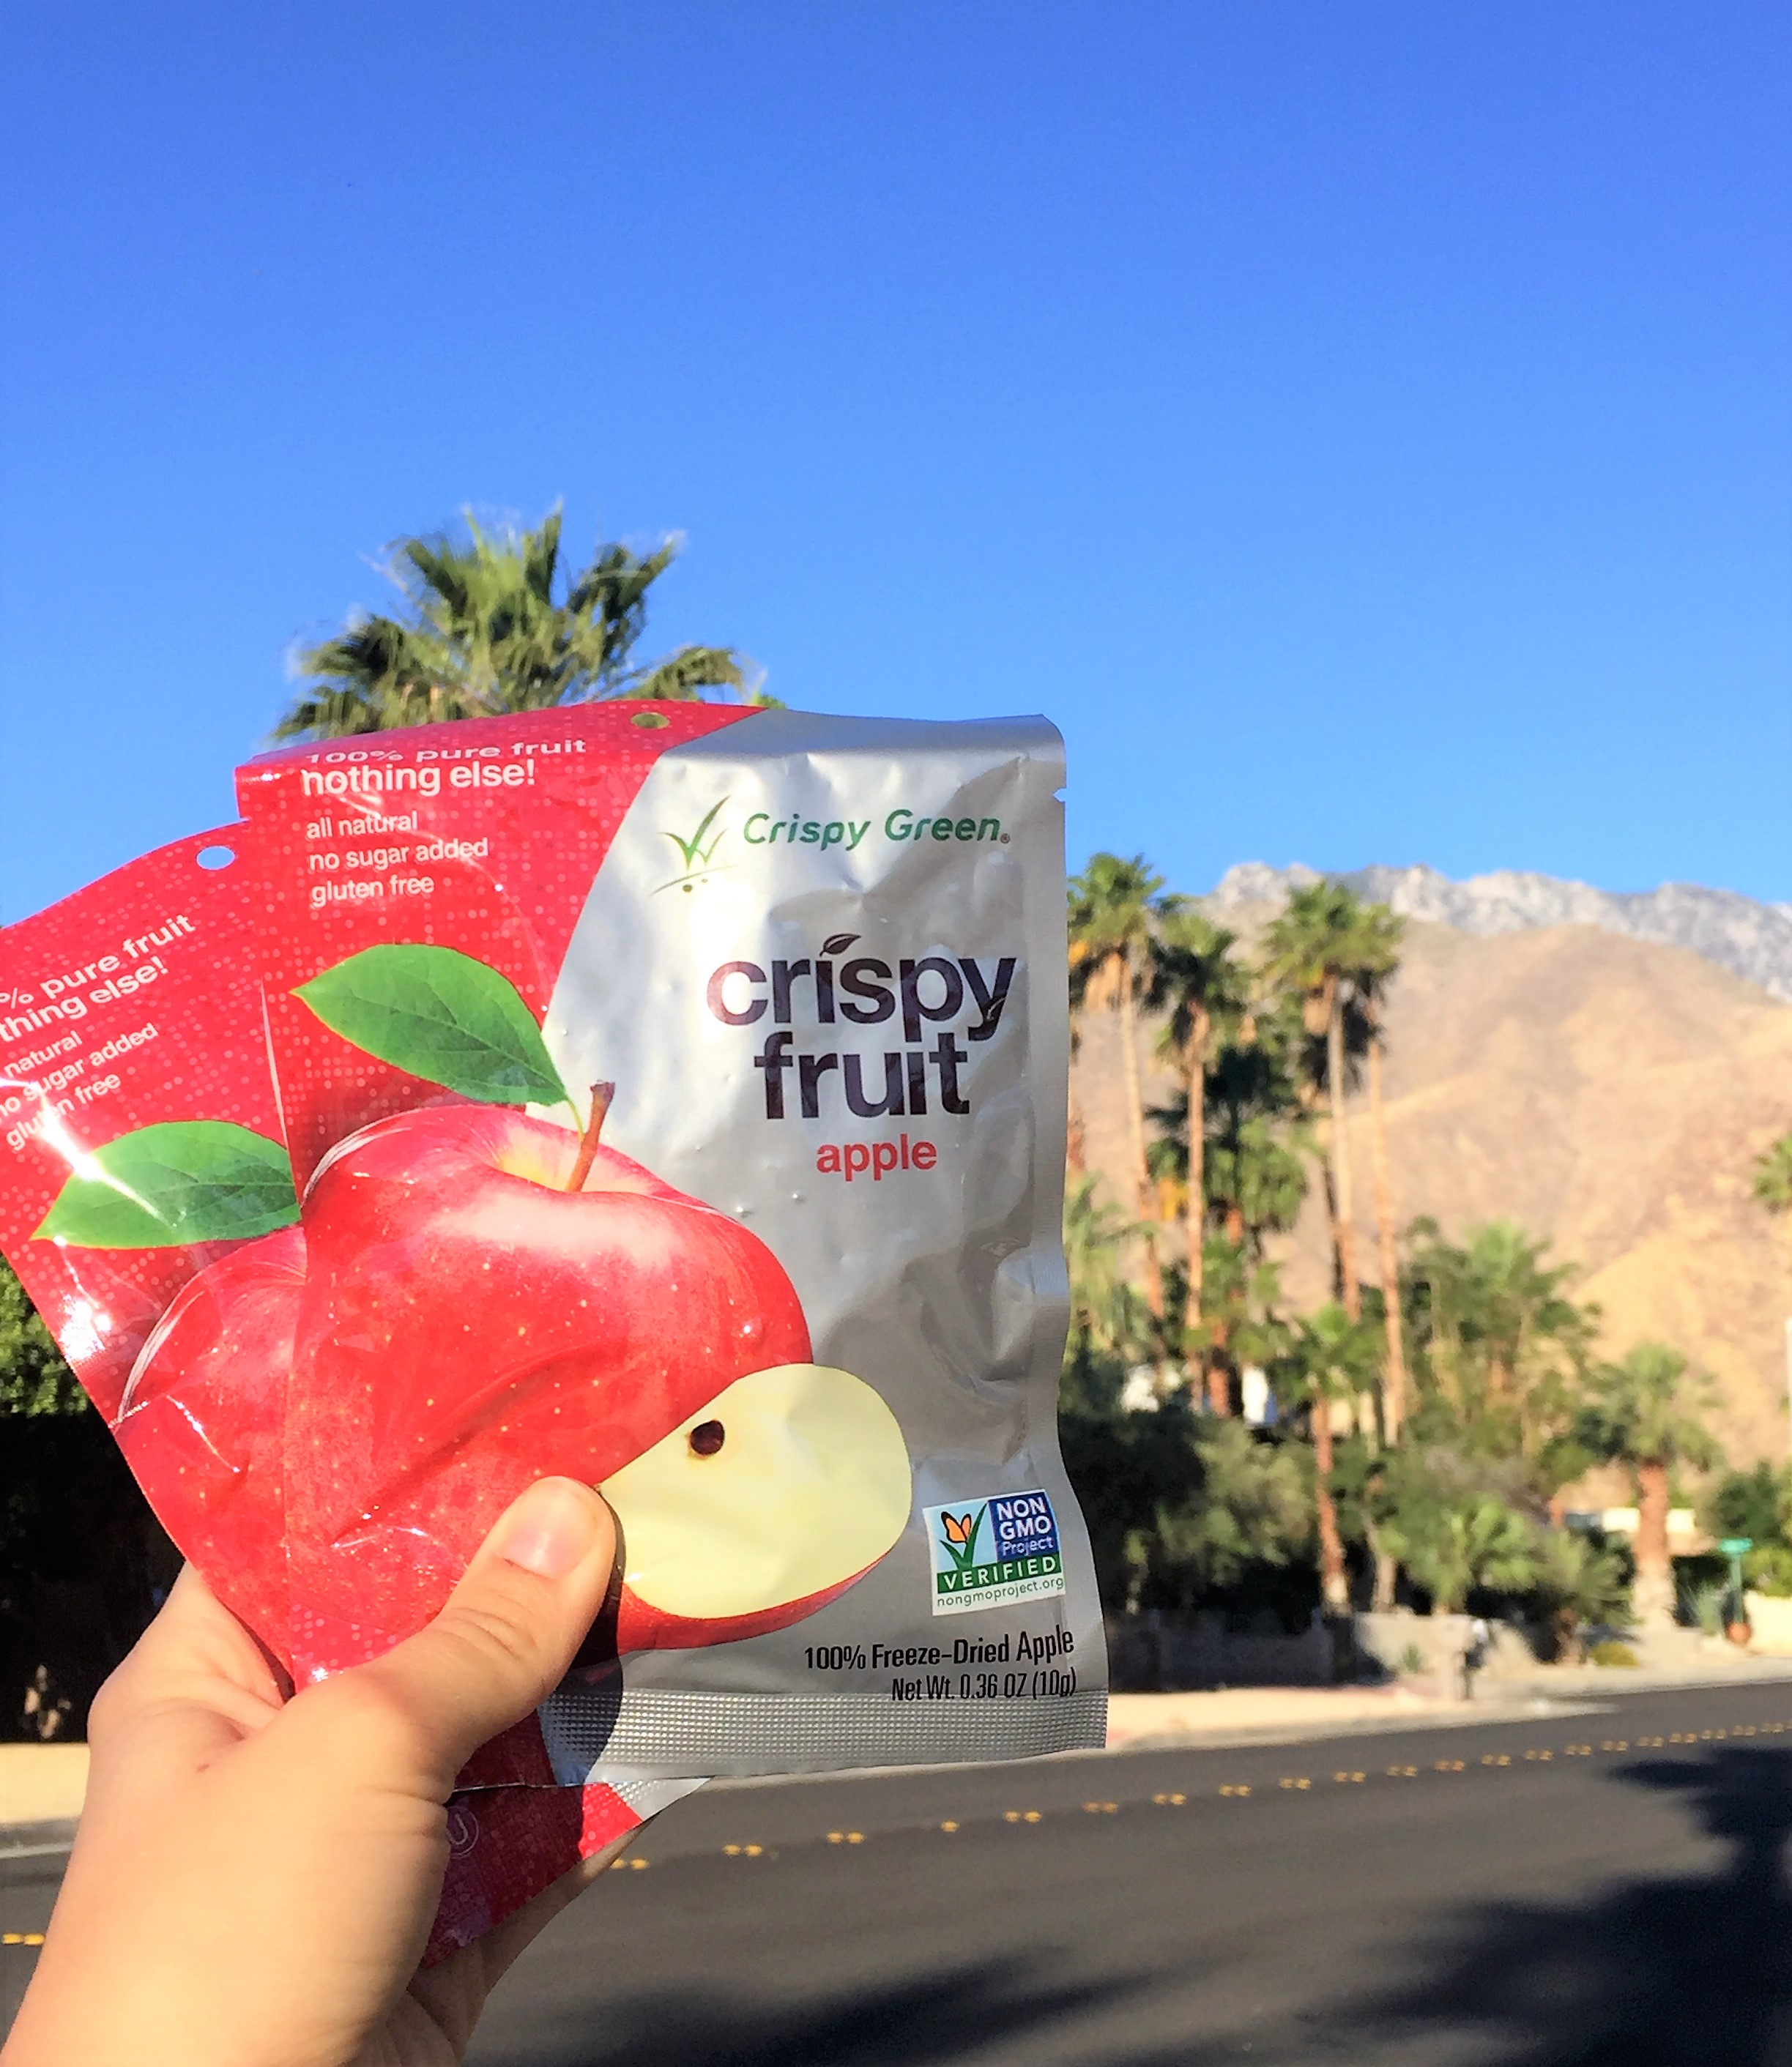 Palm-springs-road-trip-snacks